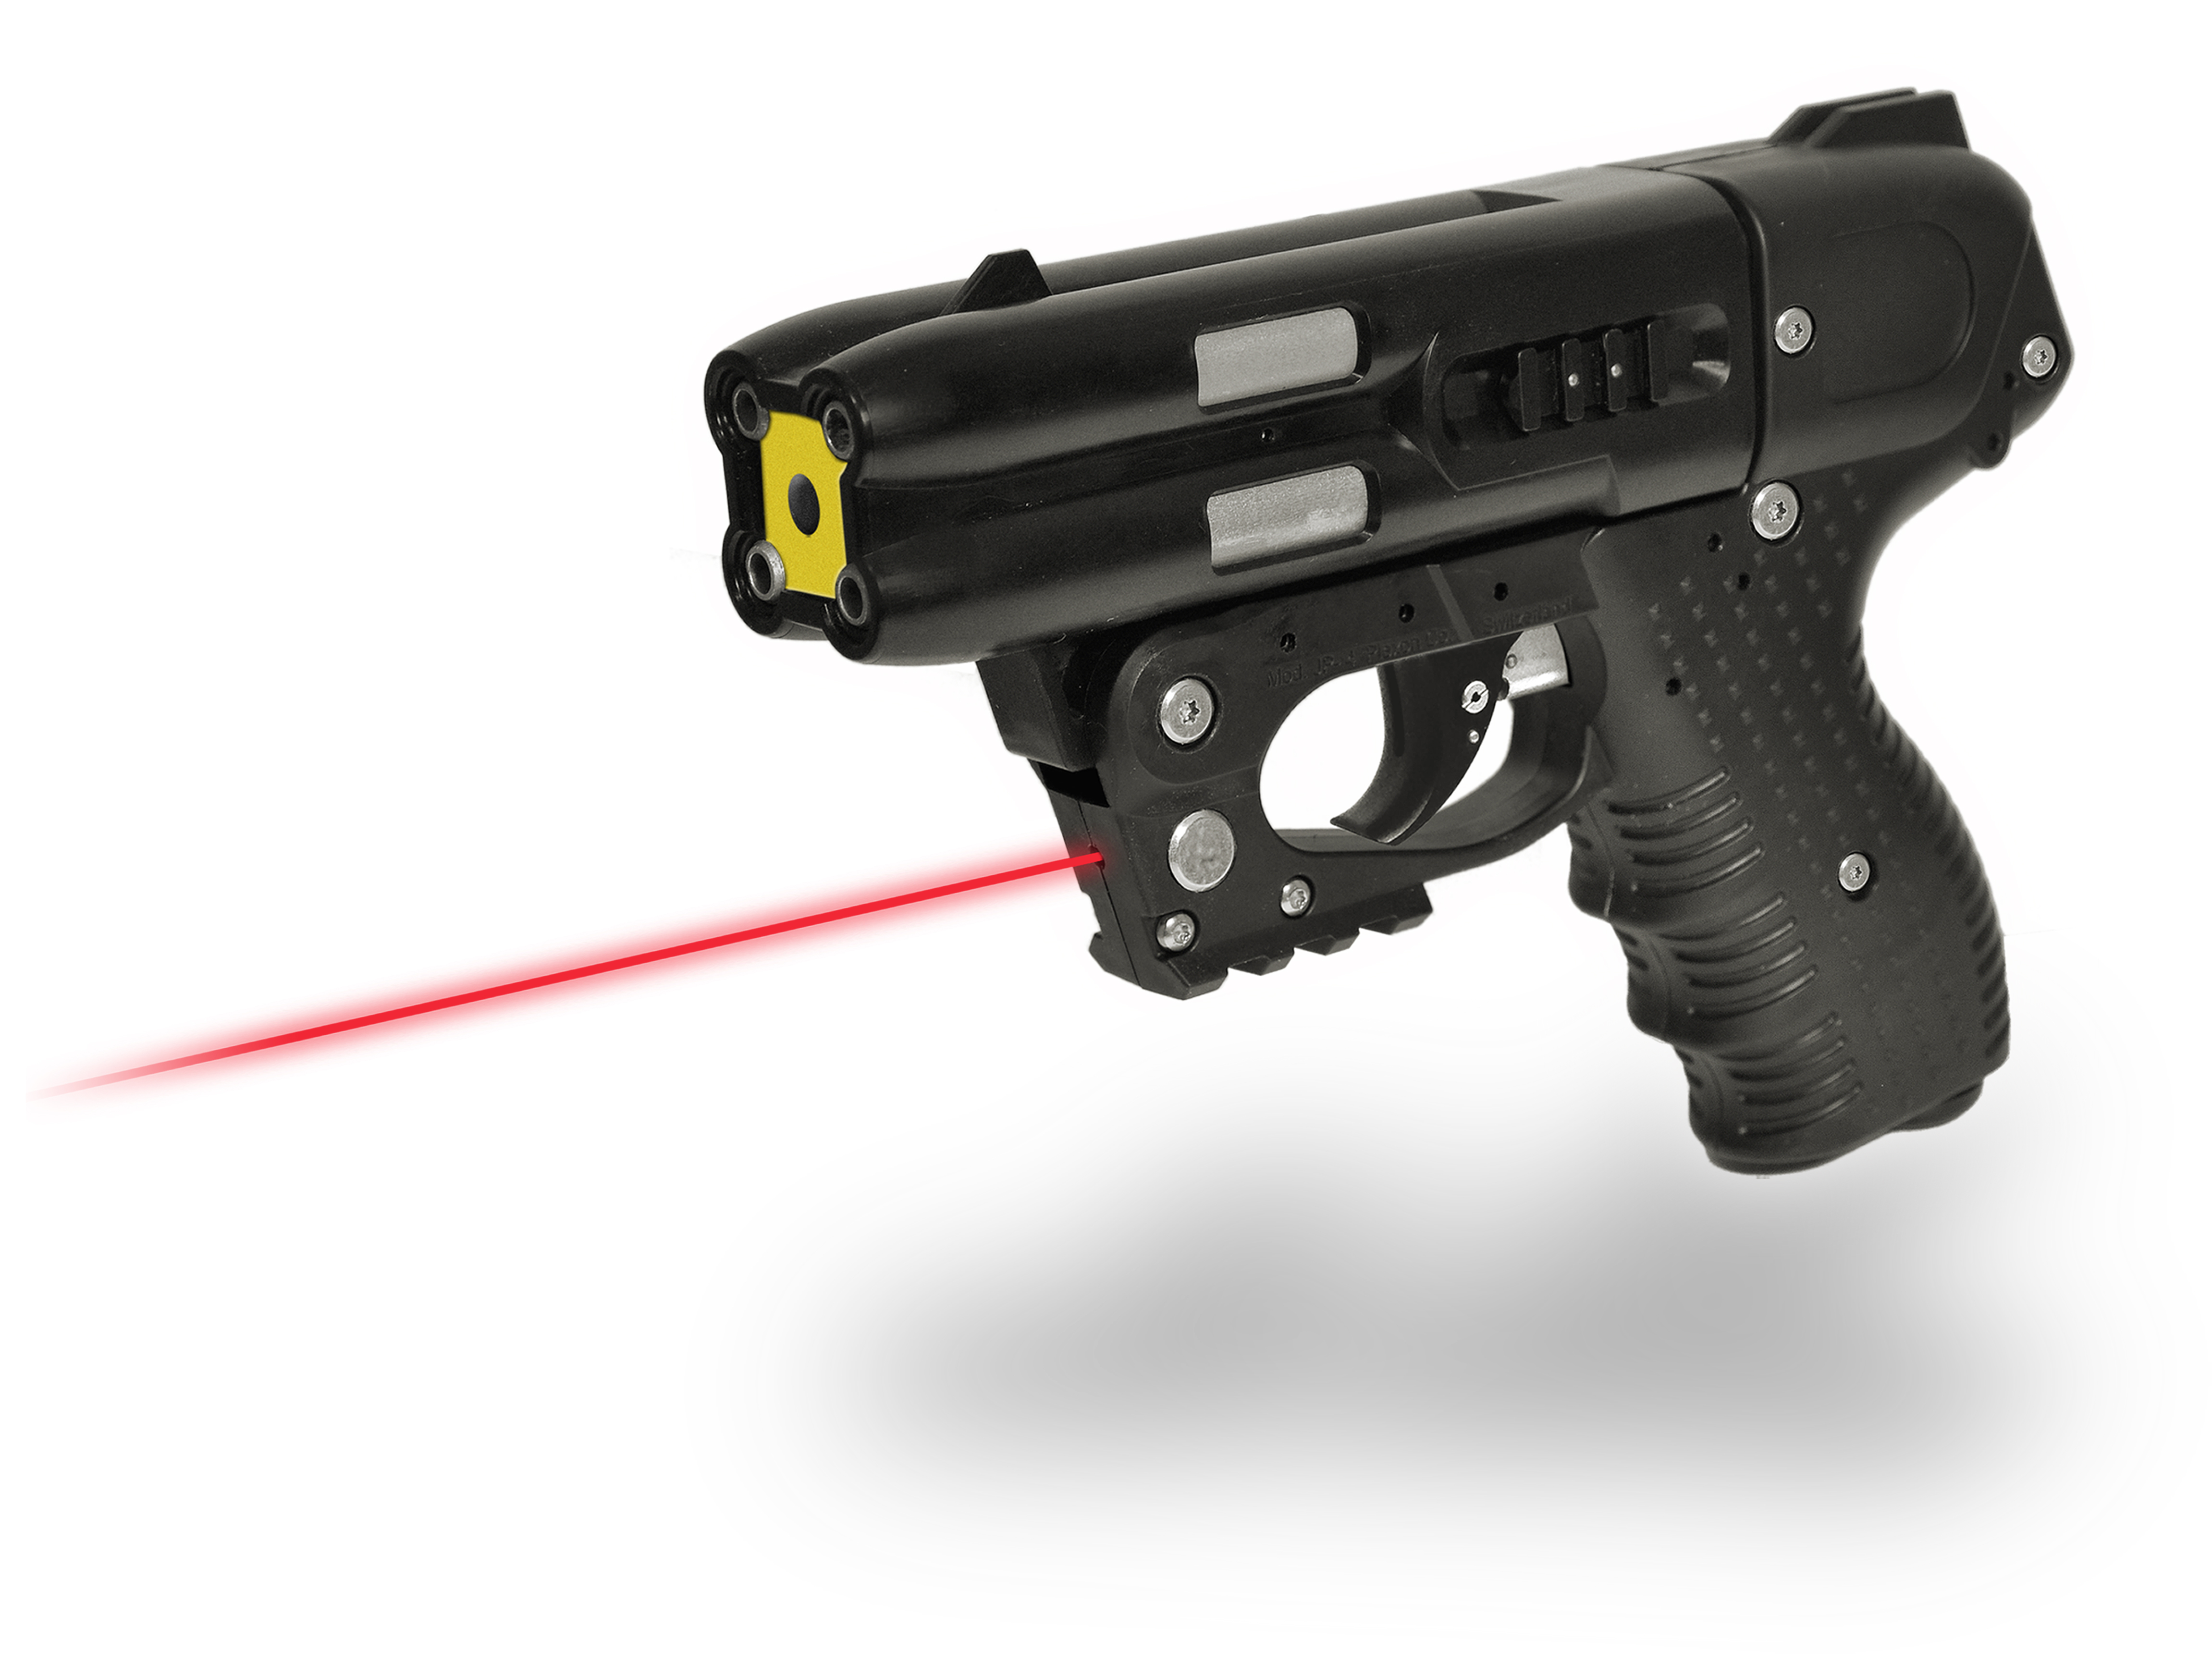 FIRESTORM JPX 4 LE WITH LASER